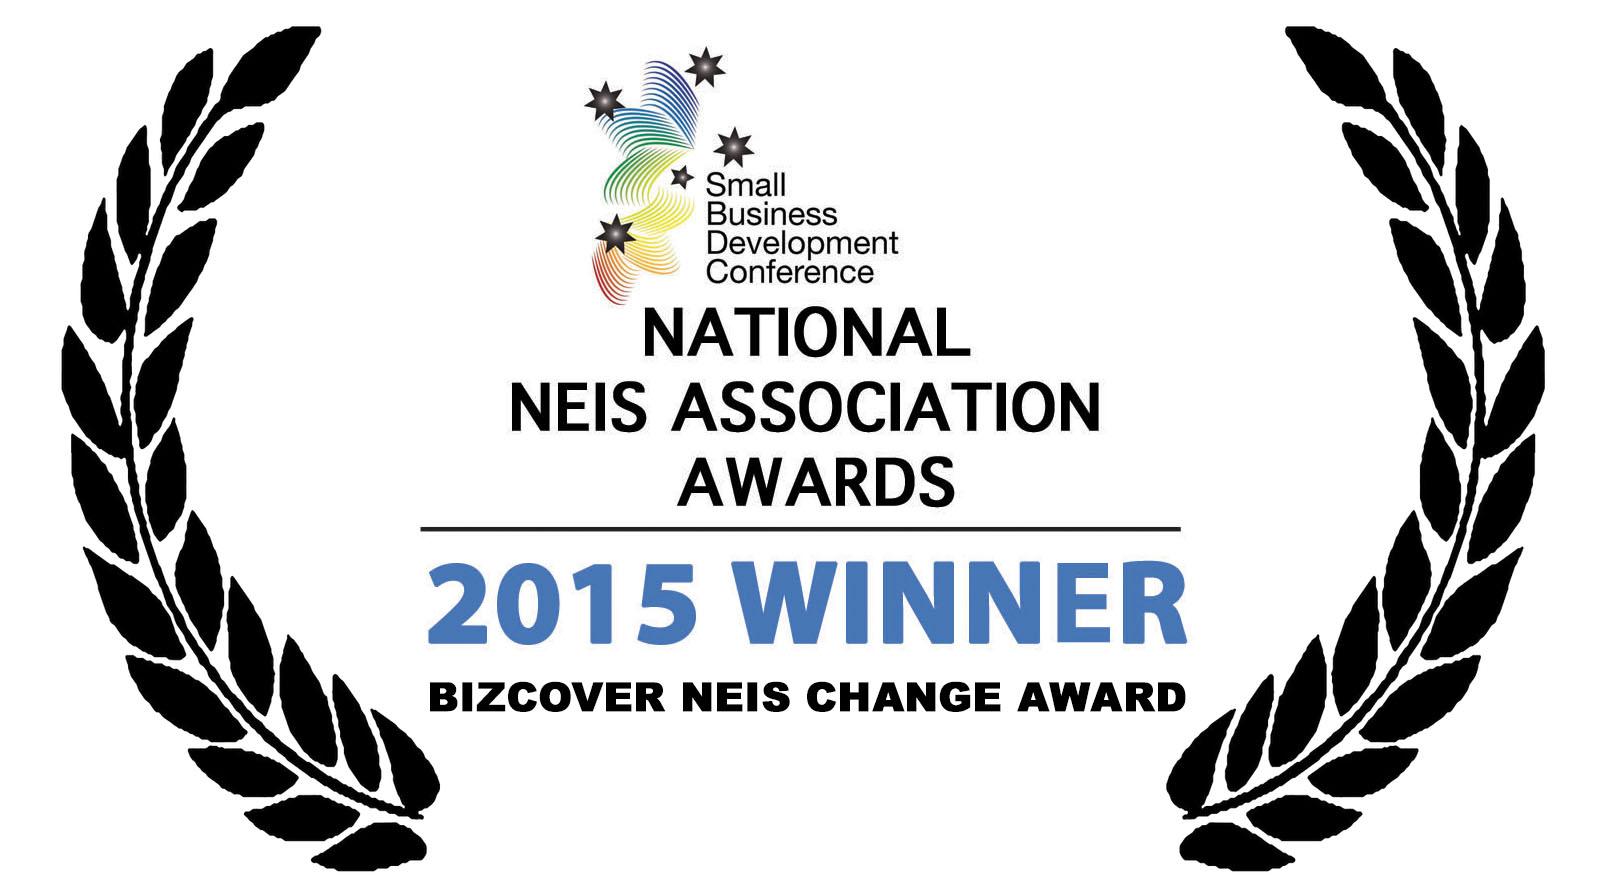 Small Business Development Conference - National NEIS Association Awards 2015